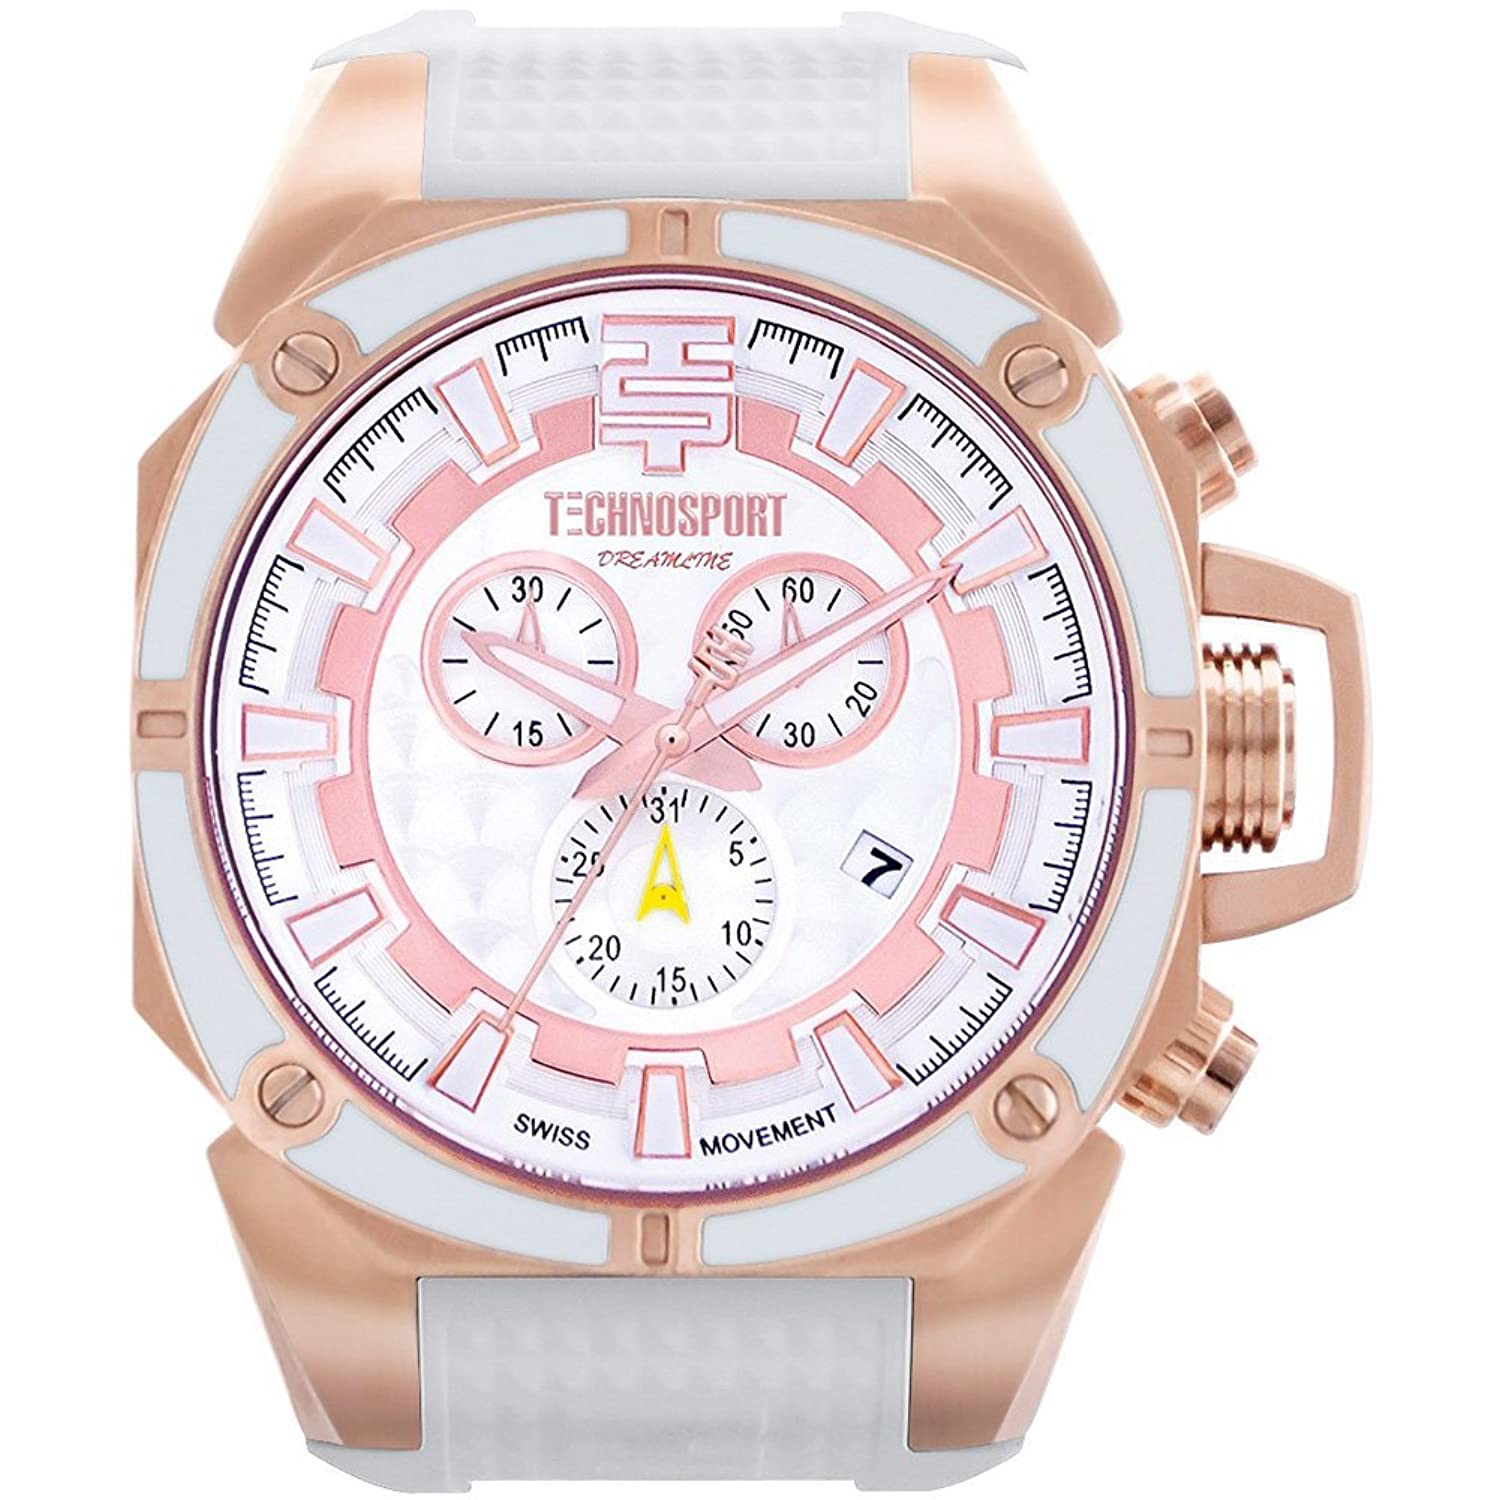 TechnoSport Unisex Chrono Uhr - DREAMLINE rose gold